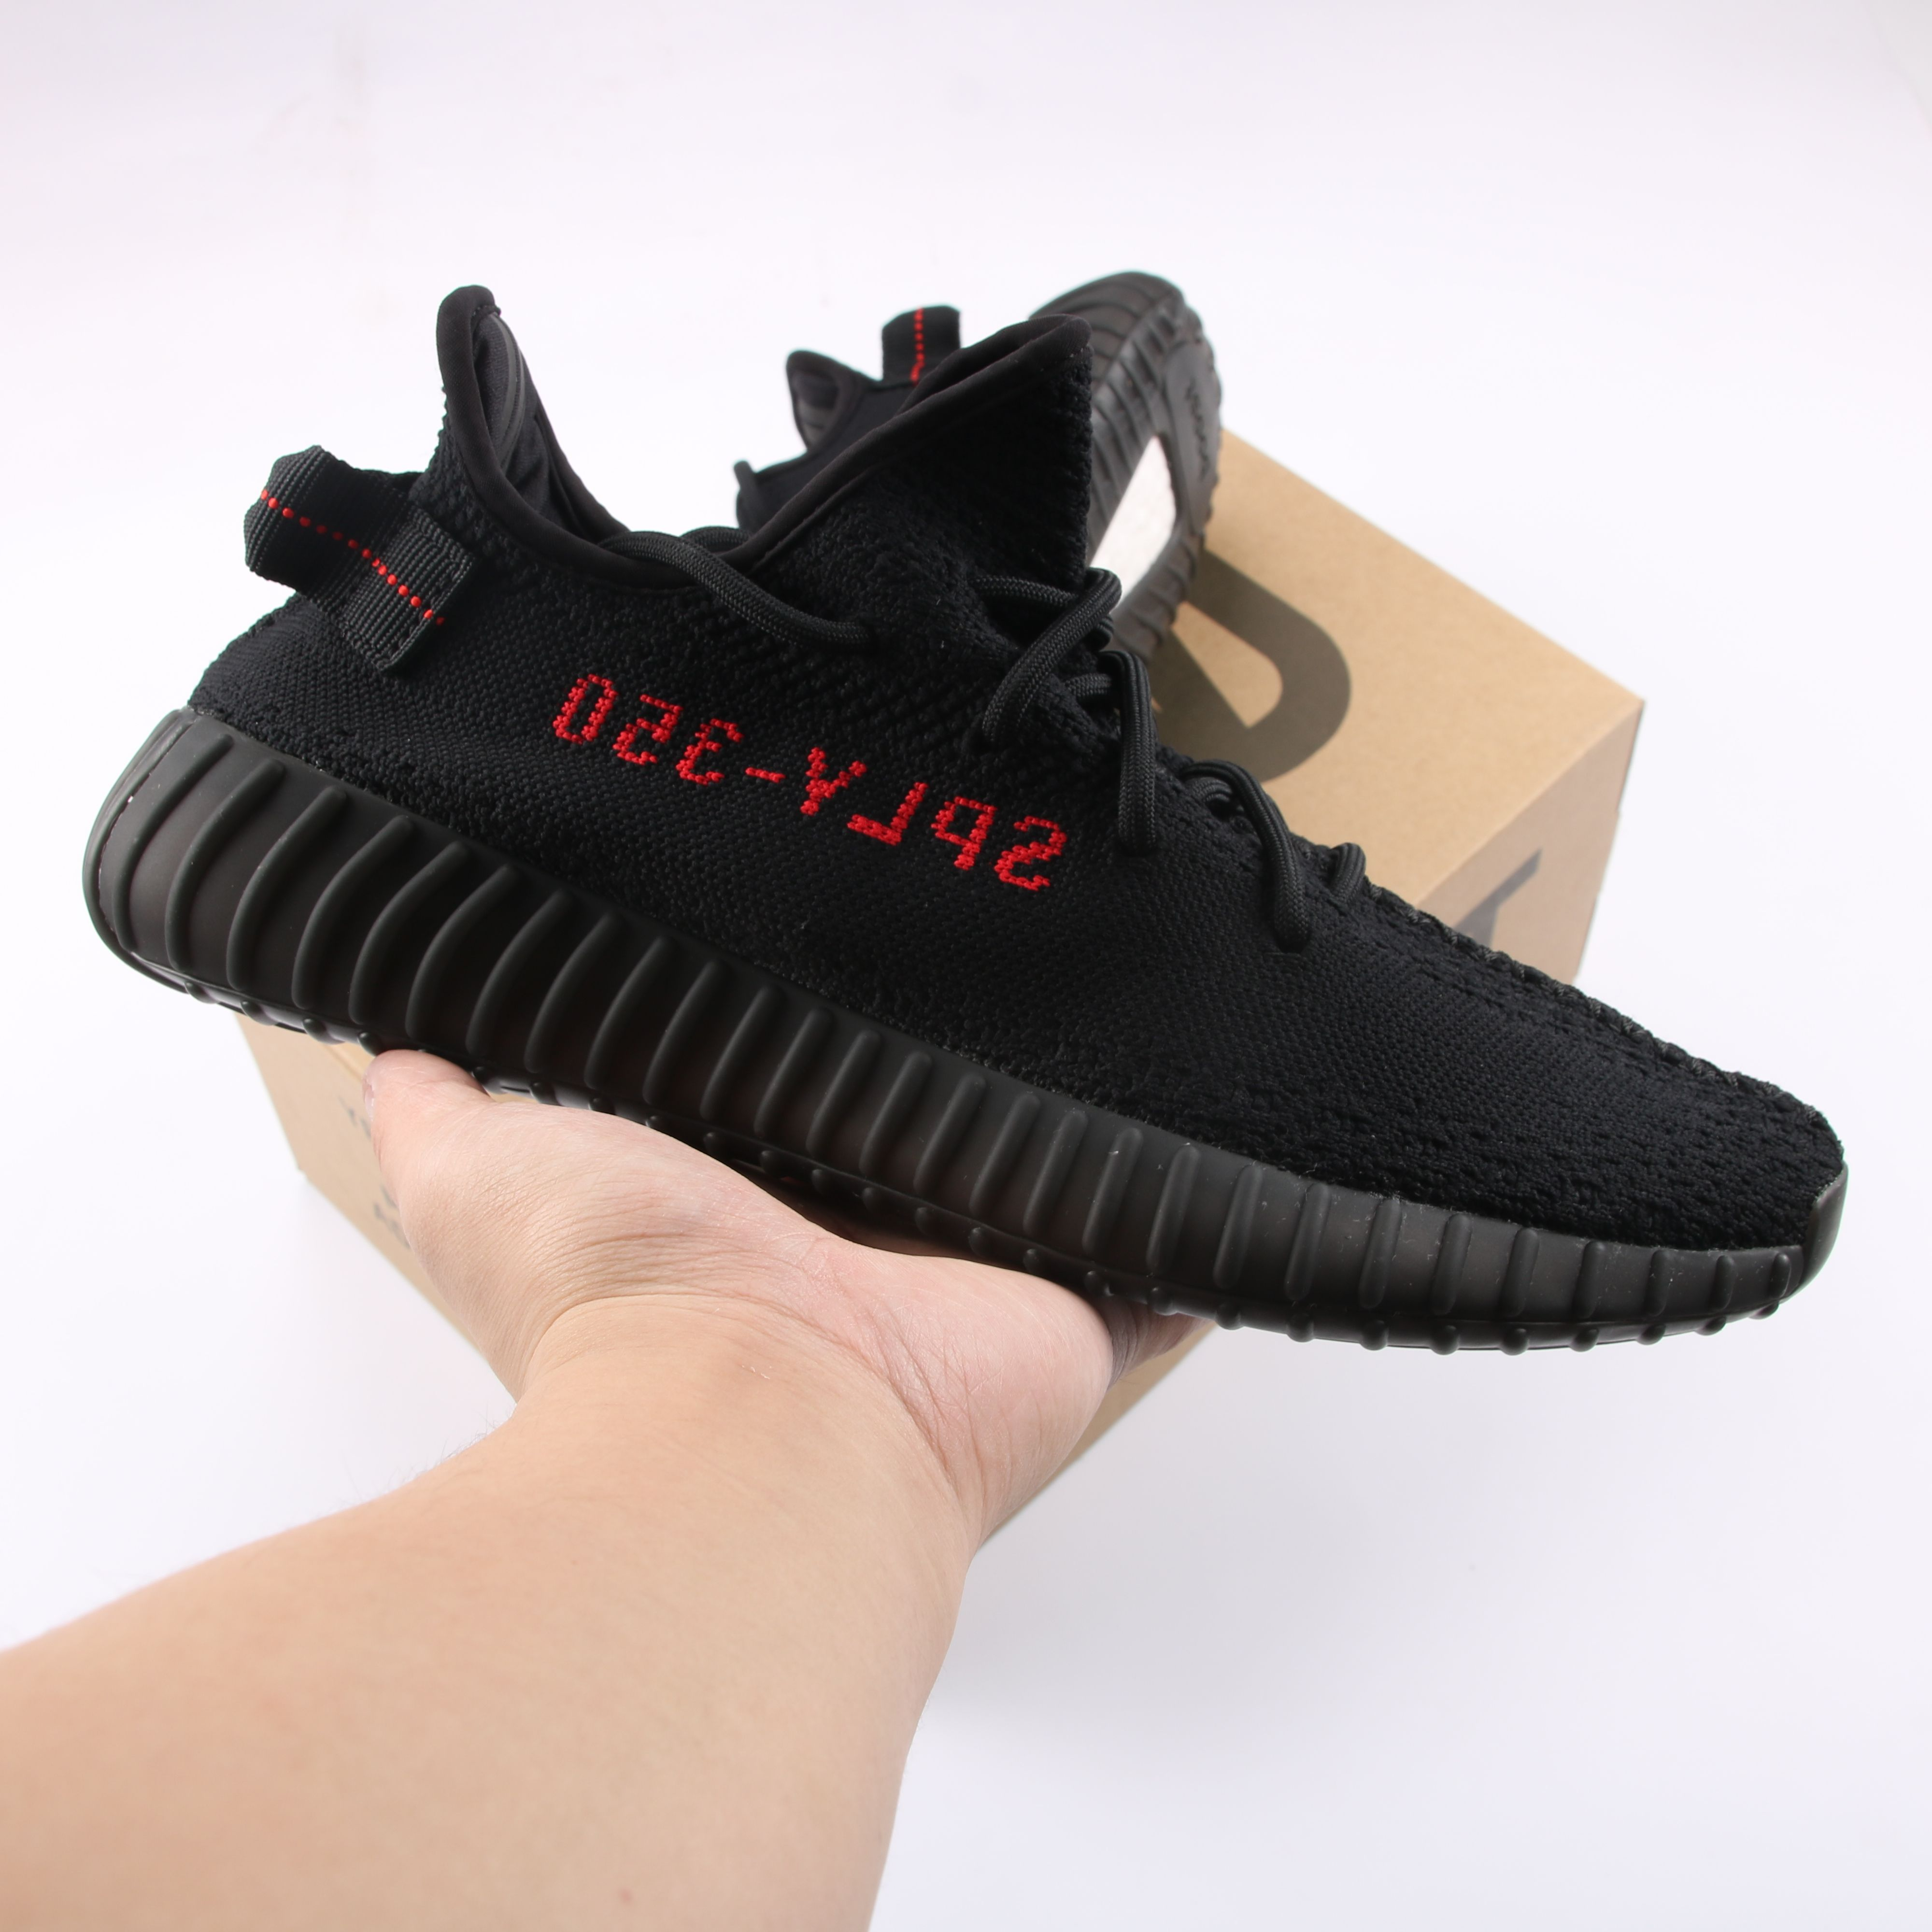 Yeezy Boost 350 V2 Black Red Cp9652 Yeezy Yeezy Boost Black